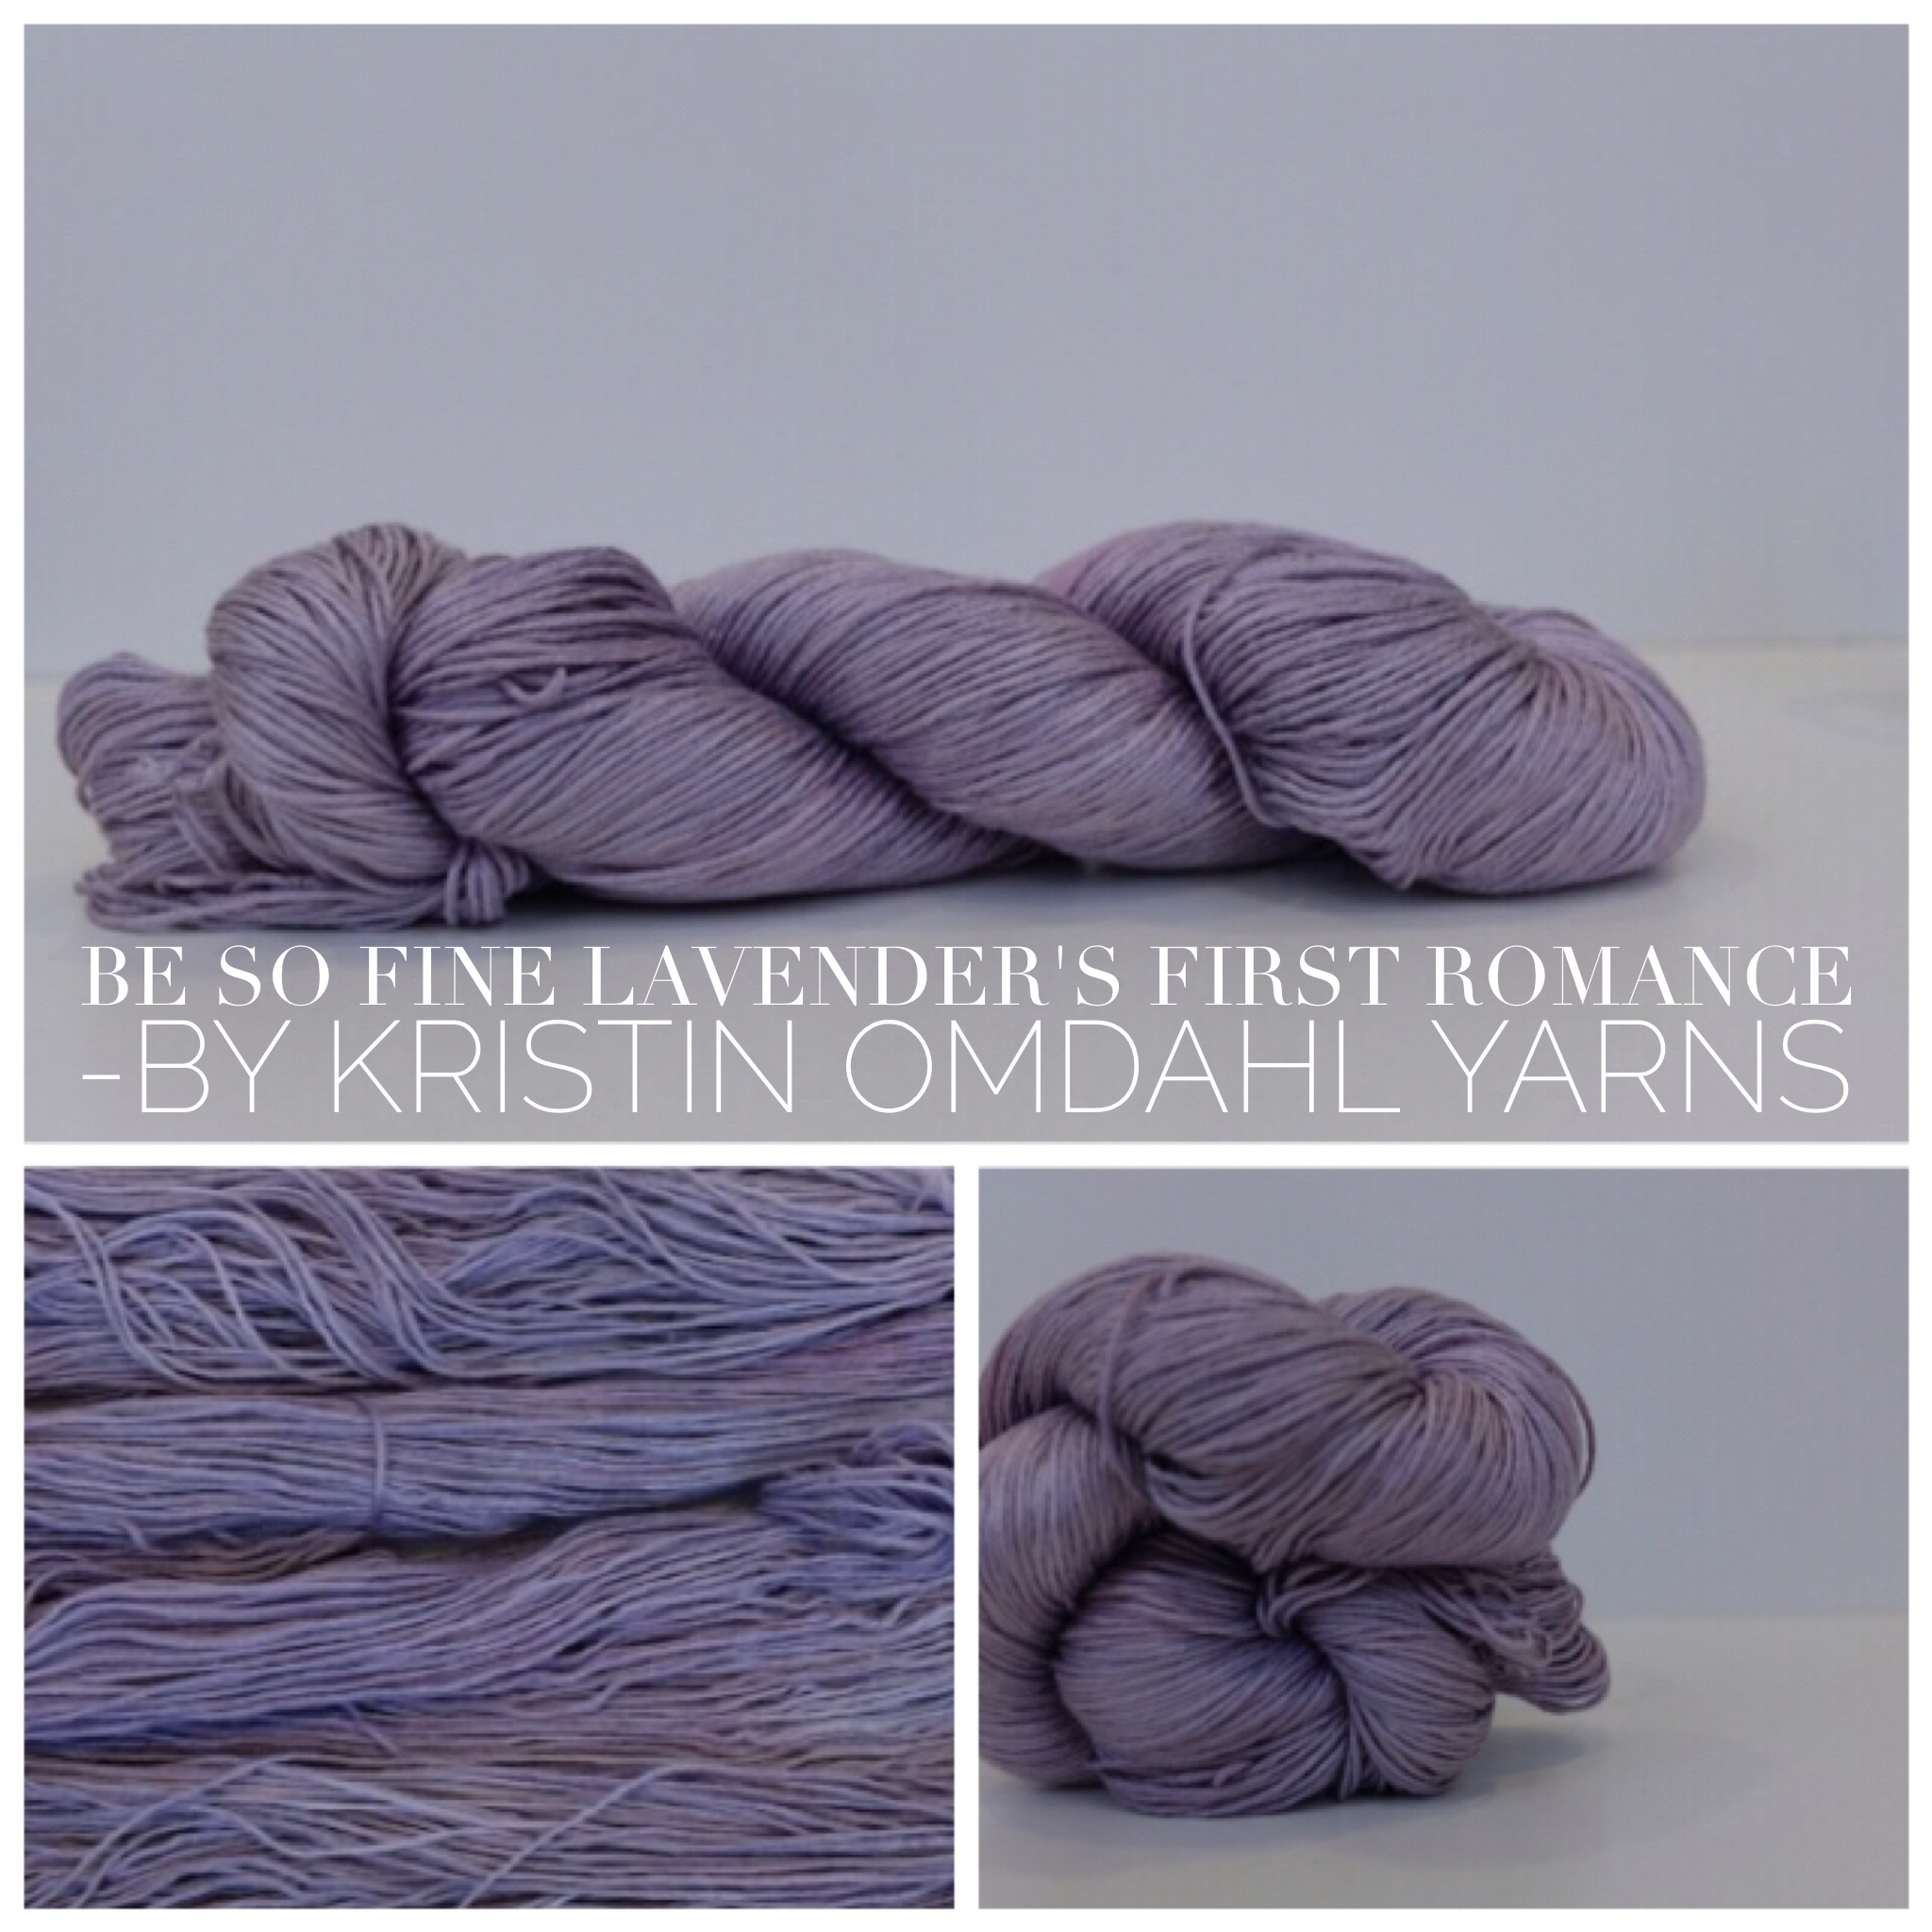 BSF lavender collage.PNG